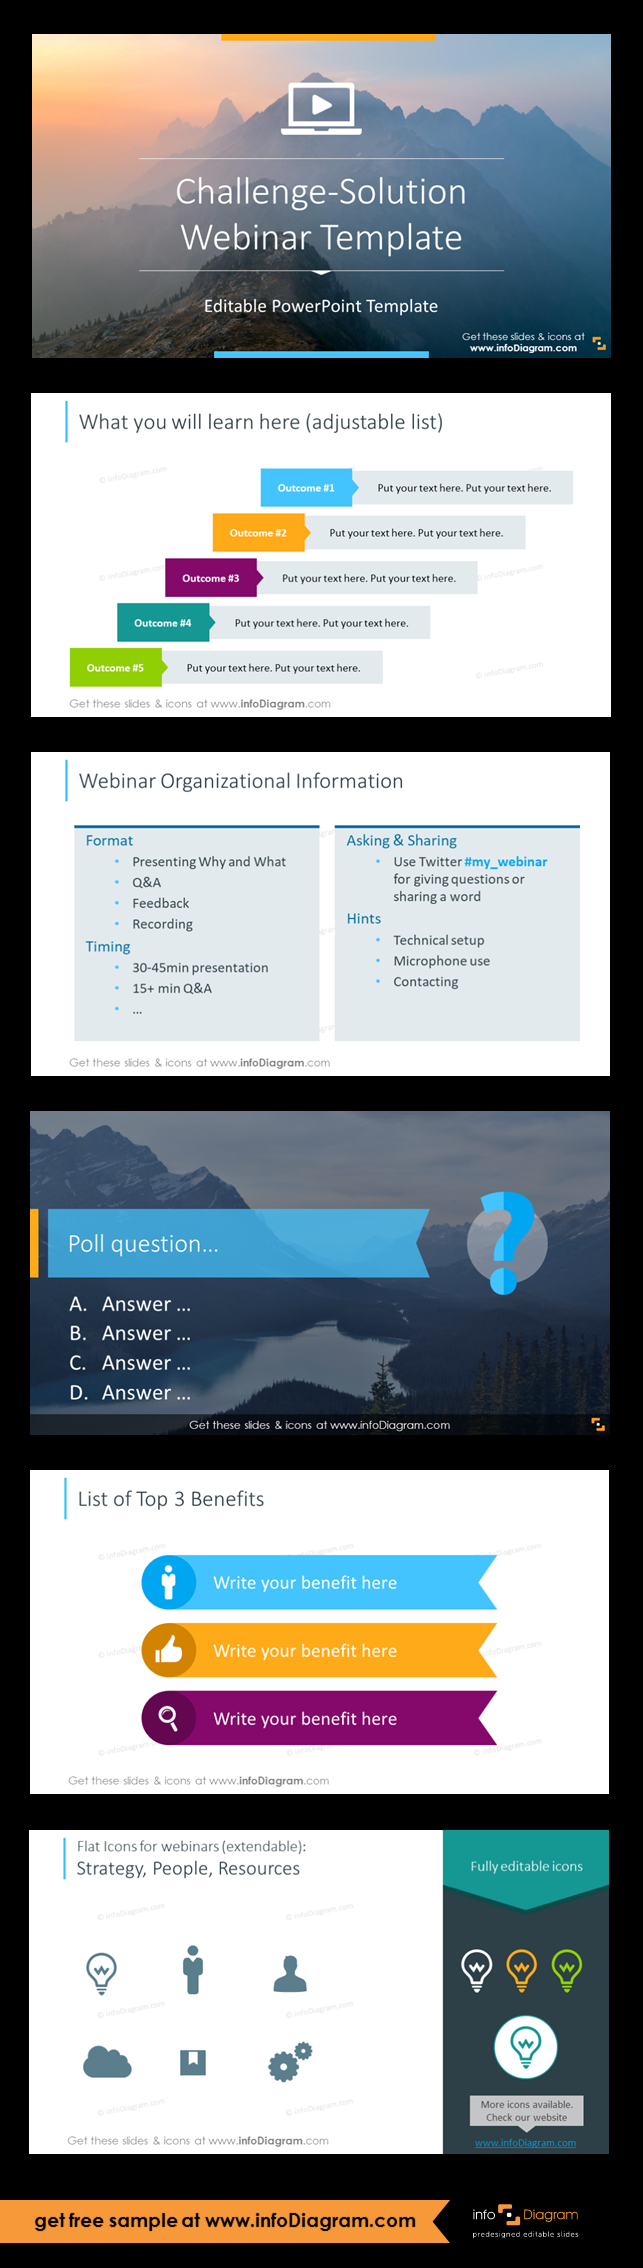 This PowerPoint Template contains predesigned webinar